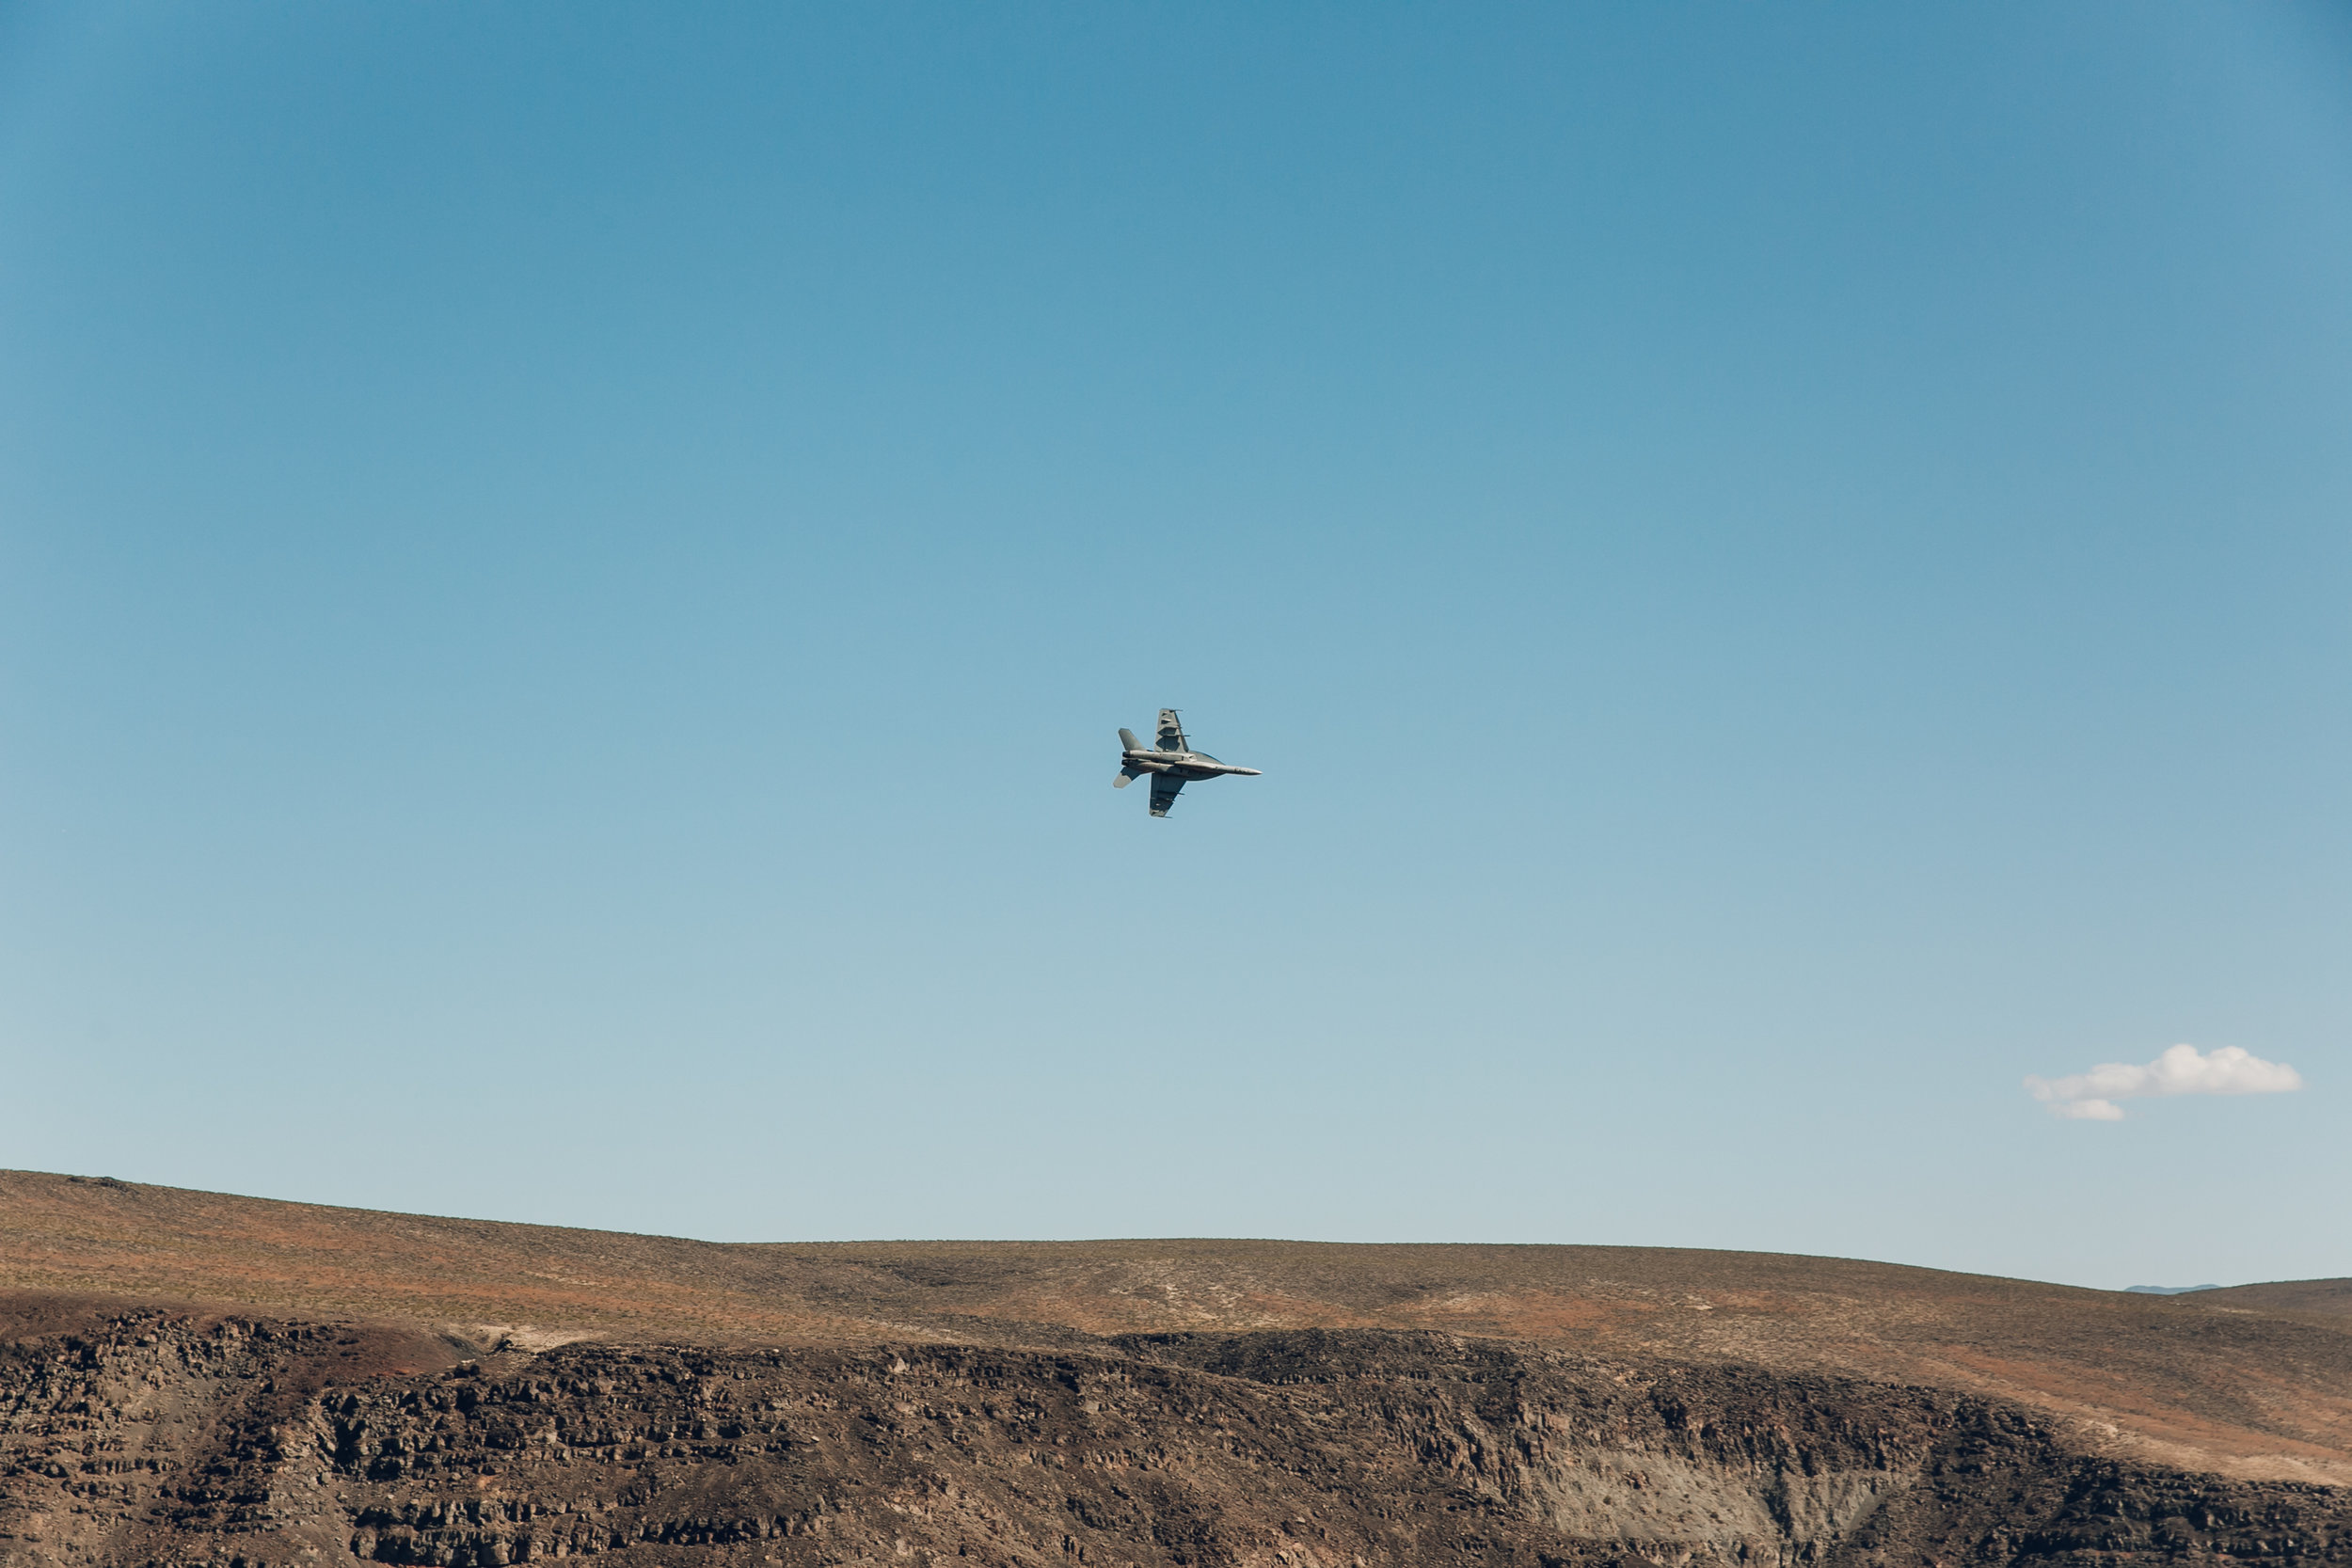 Low-flying jets over Star Wars Canyon in Death Valley.